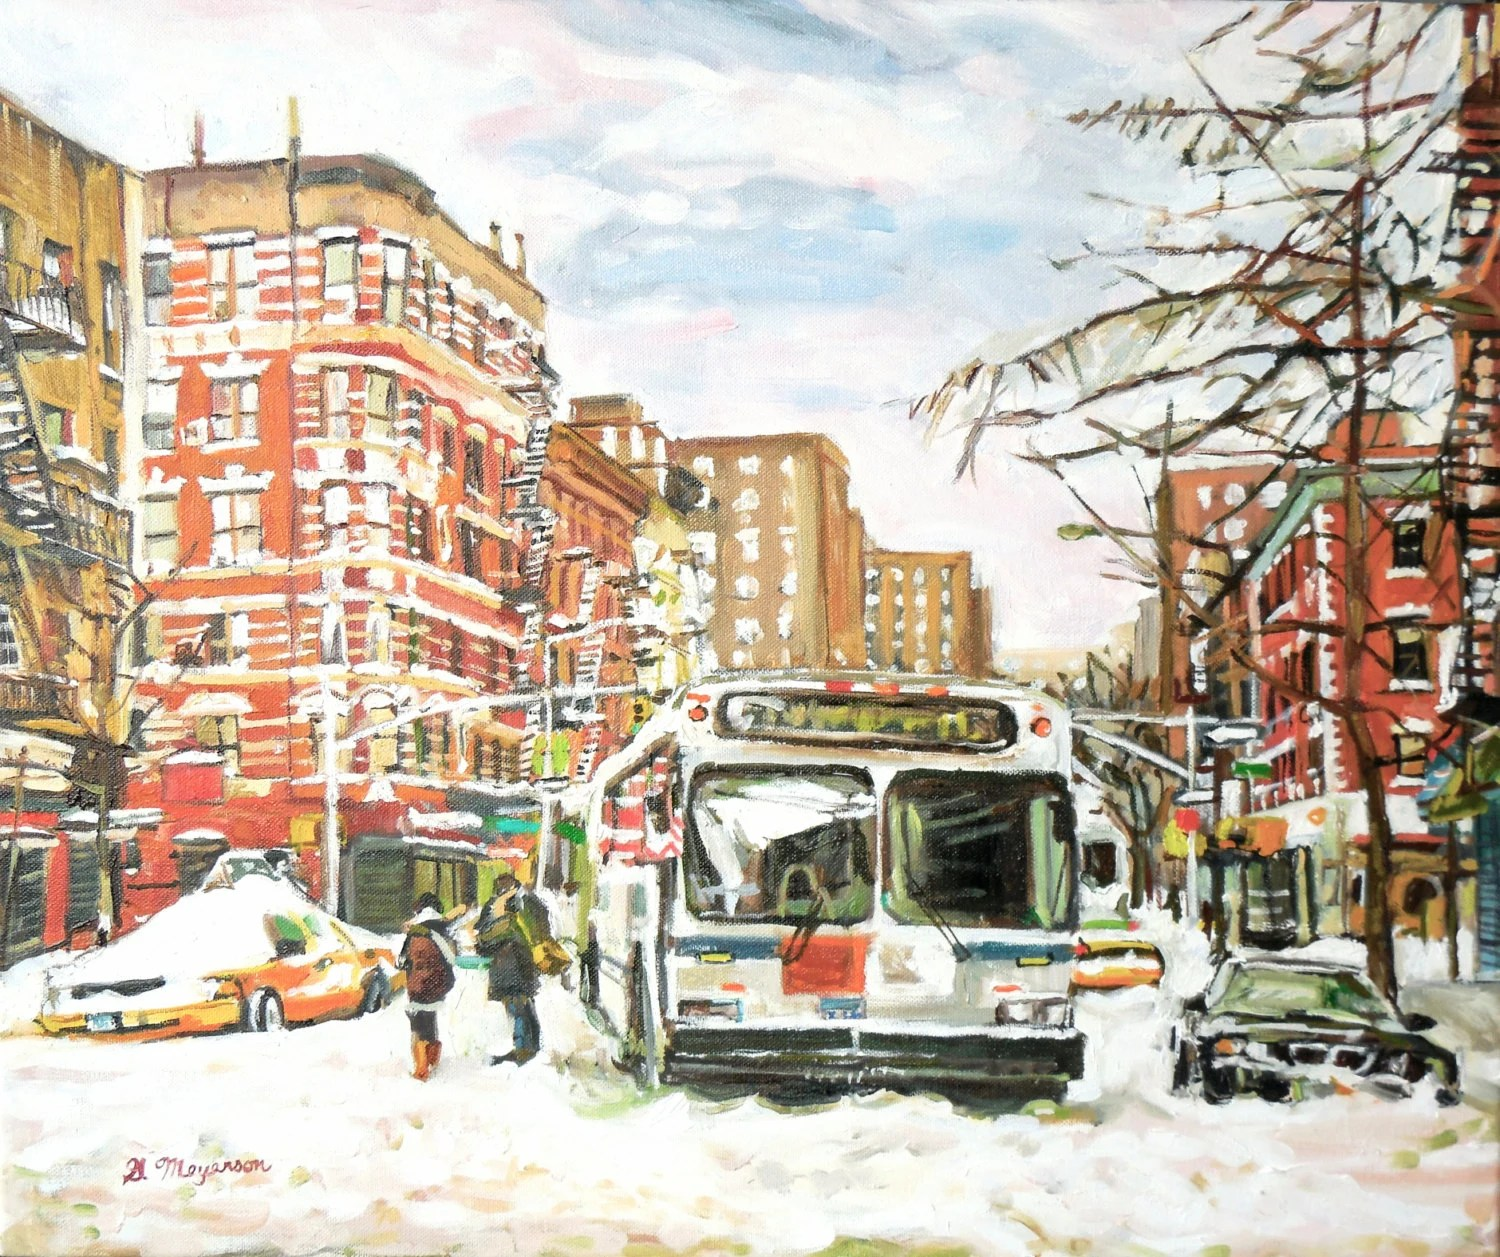 East Village In Snow Fine Art Print  New York winter Cityscape white red brown Painting by Gwen Meyerson - GwenMeyerson